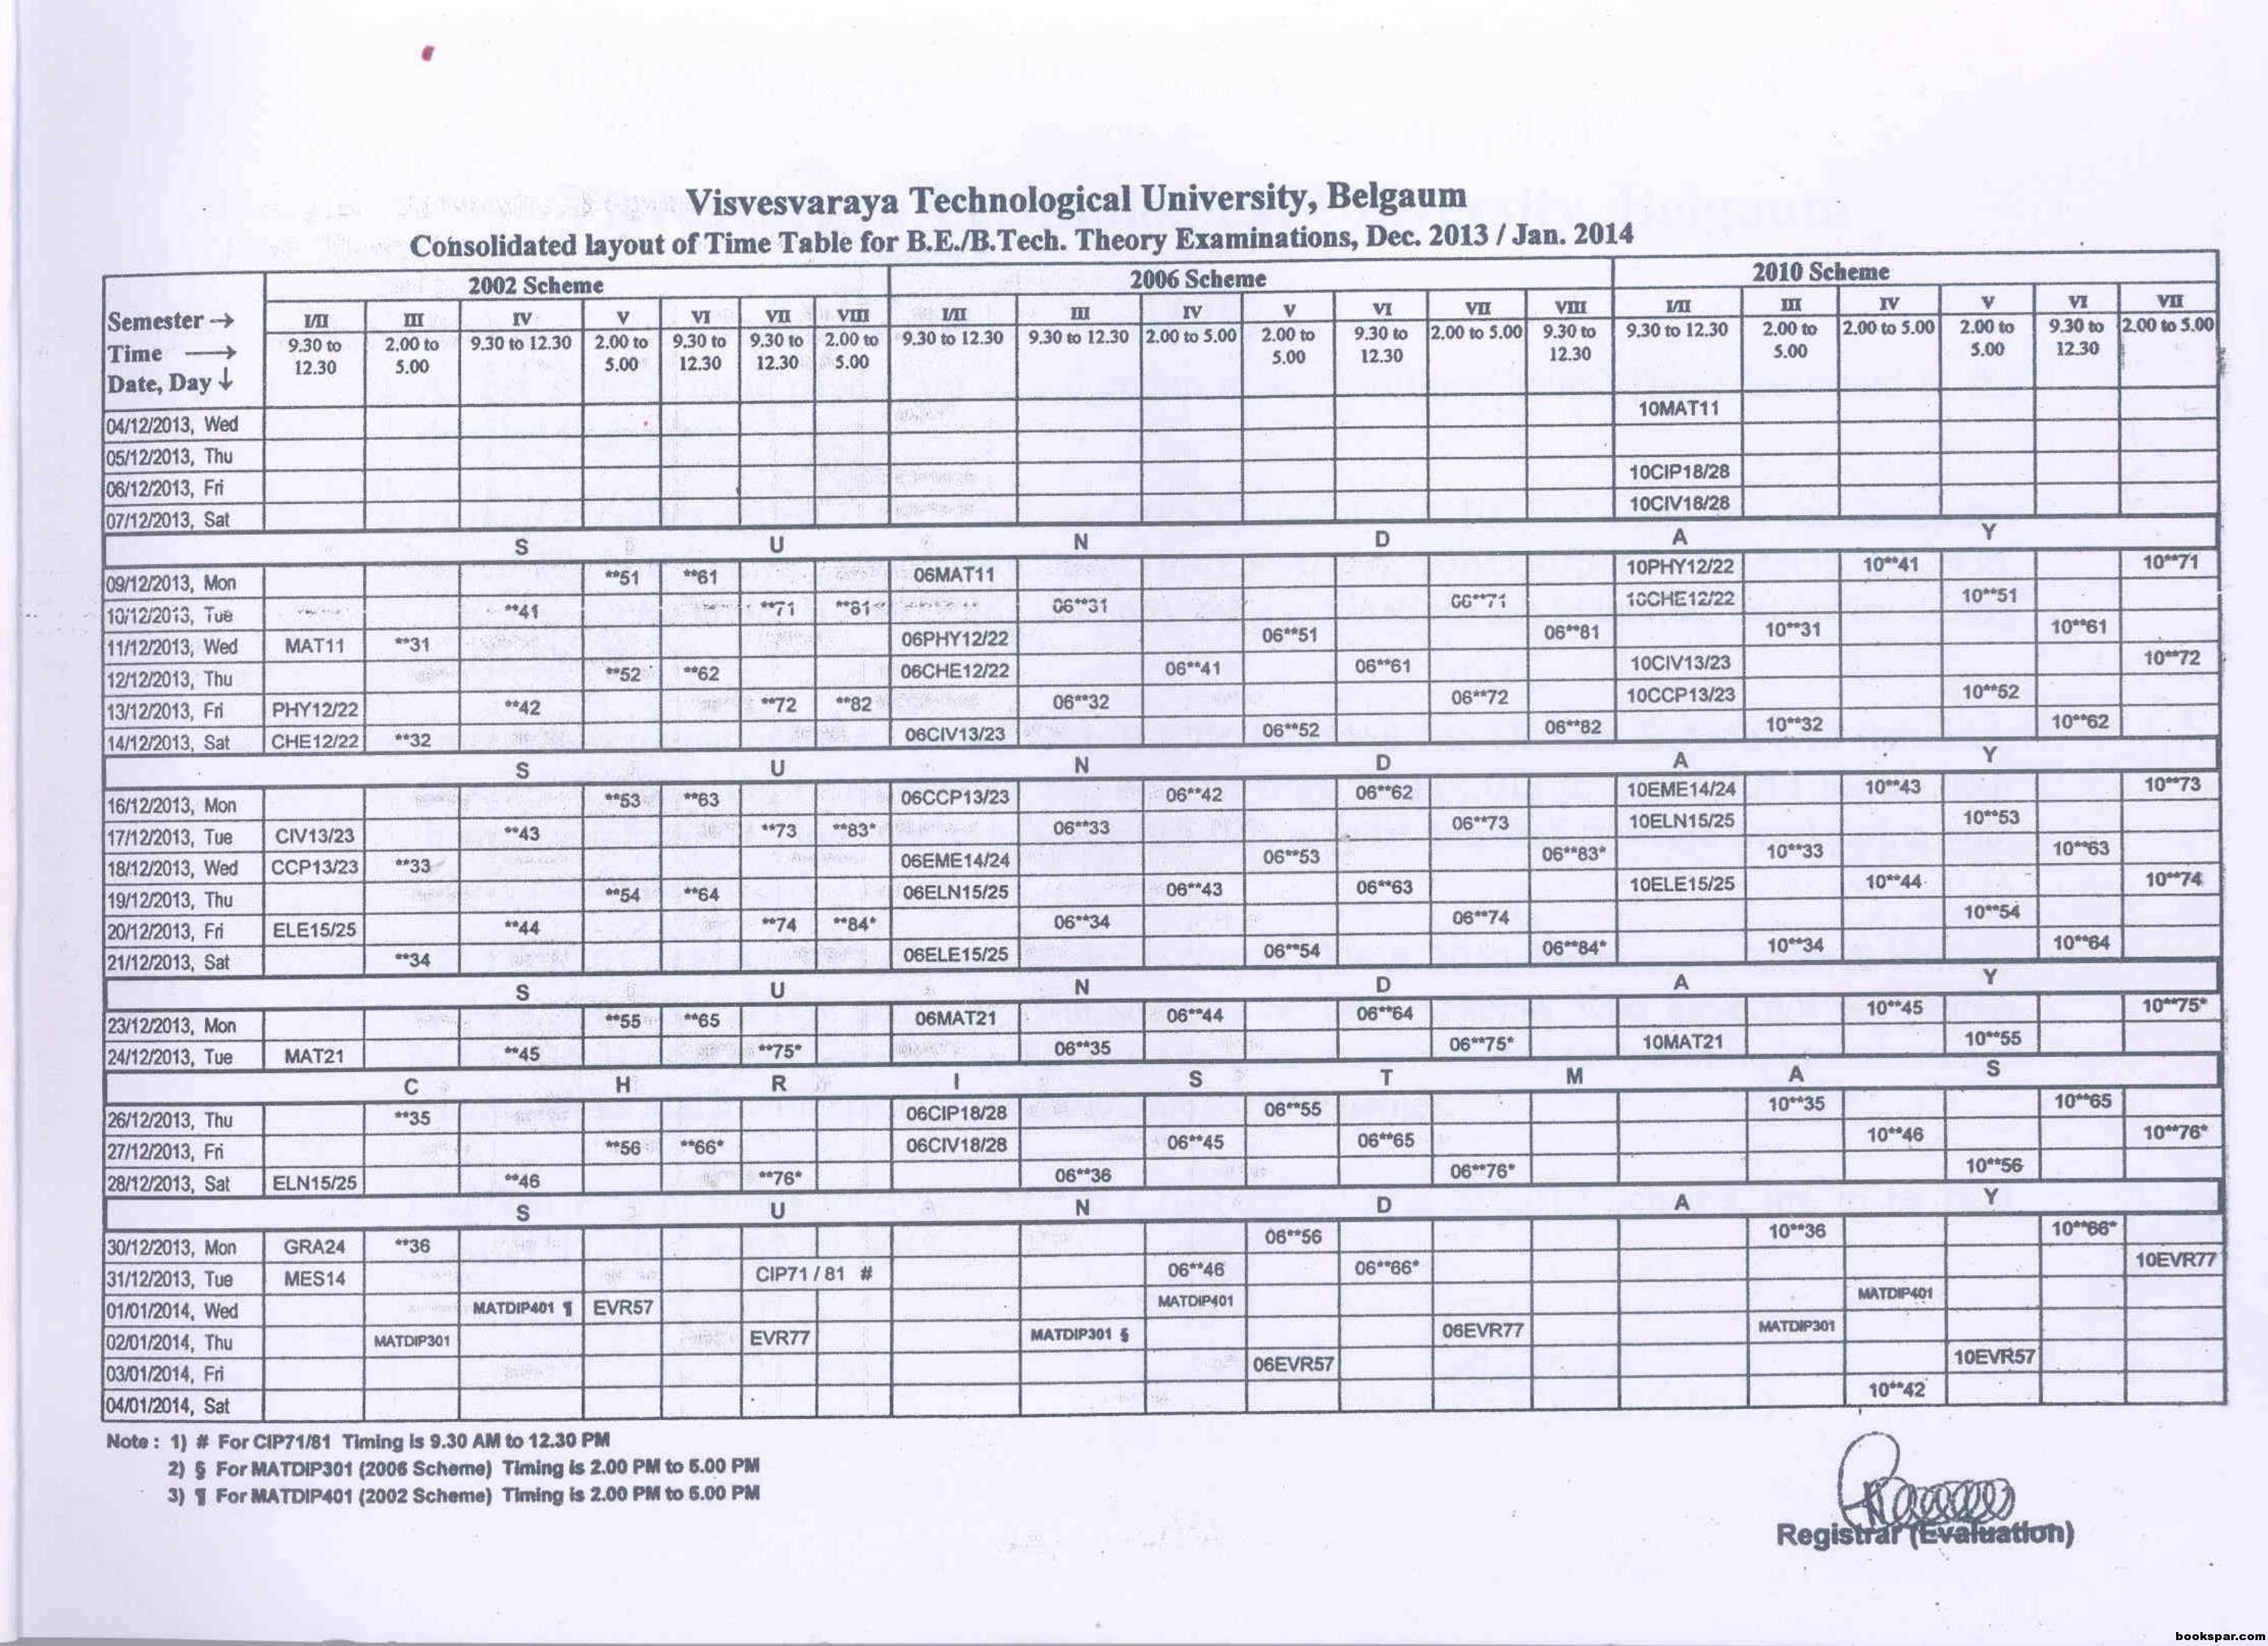 timetable vtu Vtu exam timetable for 3rd sem i am student of visvesvaraya technological university btech 3rd semester and my 3rd sem exam dates are declare but i don't know about exam time table so give me link where i get exam time table and can i get time table university's official website.